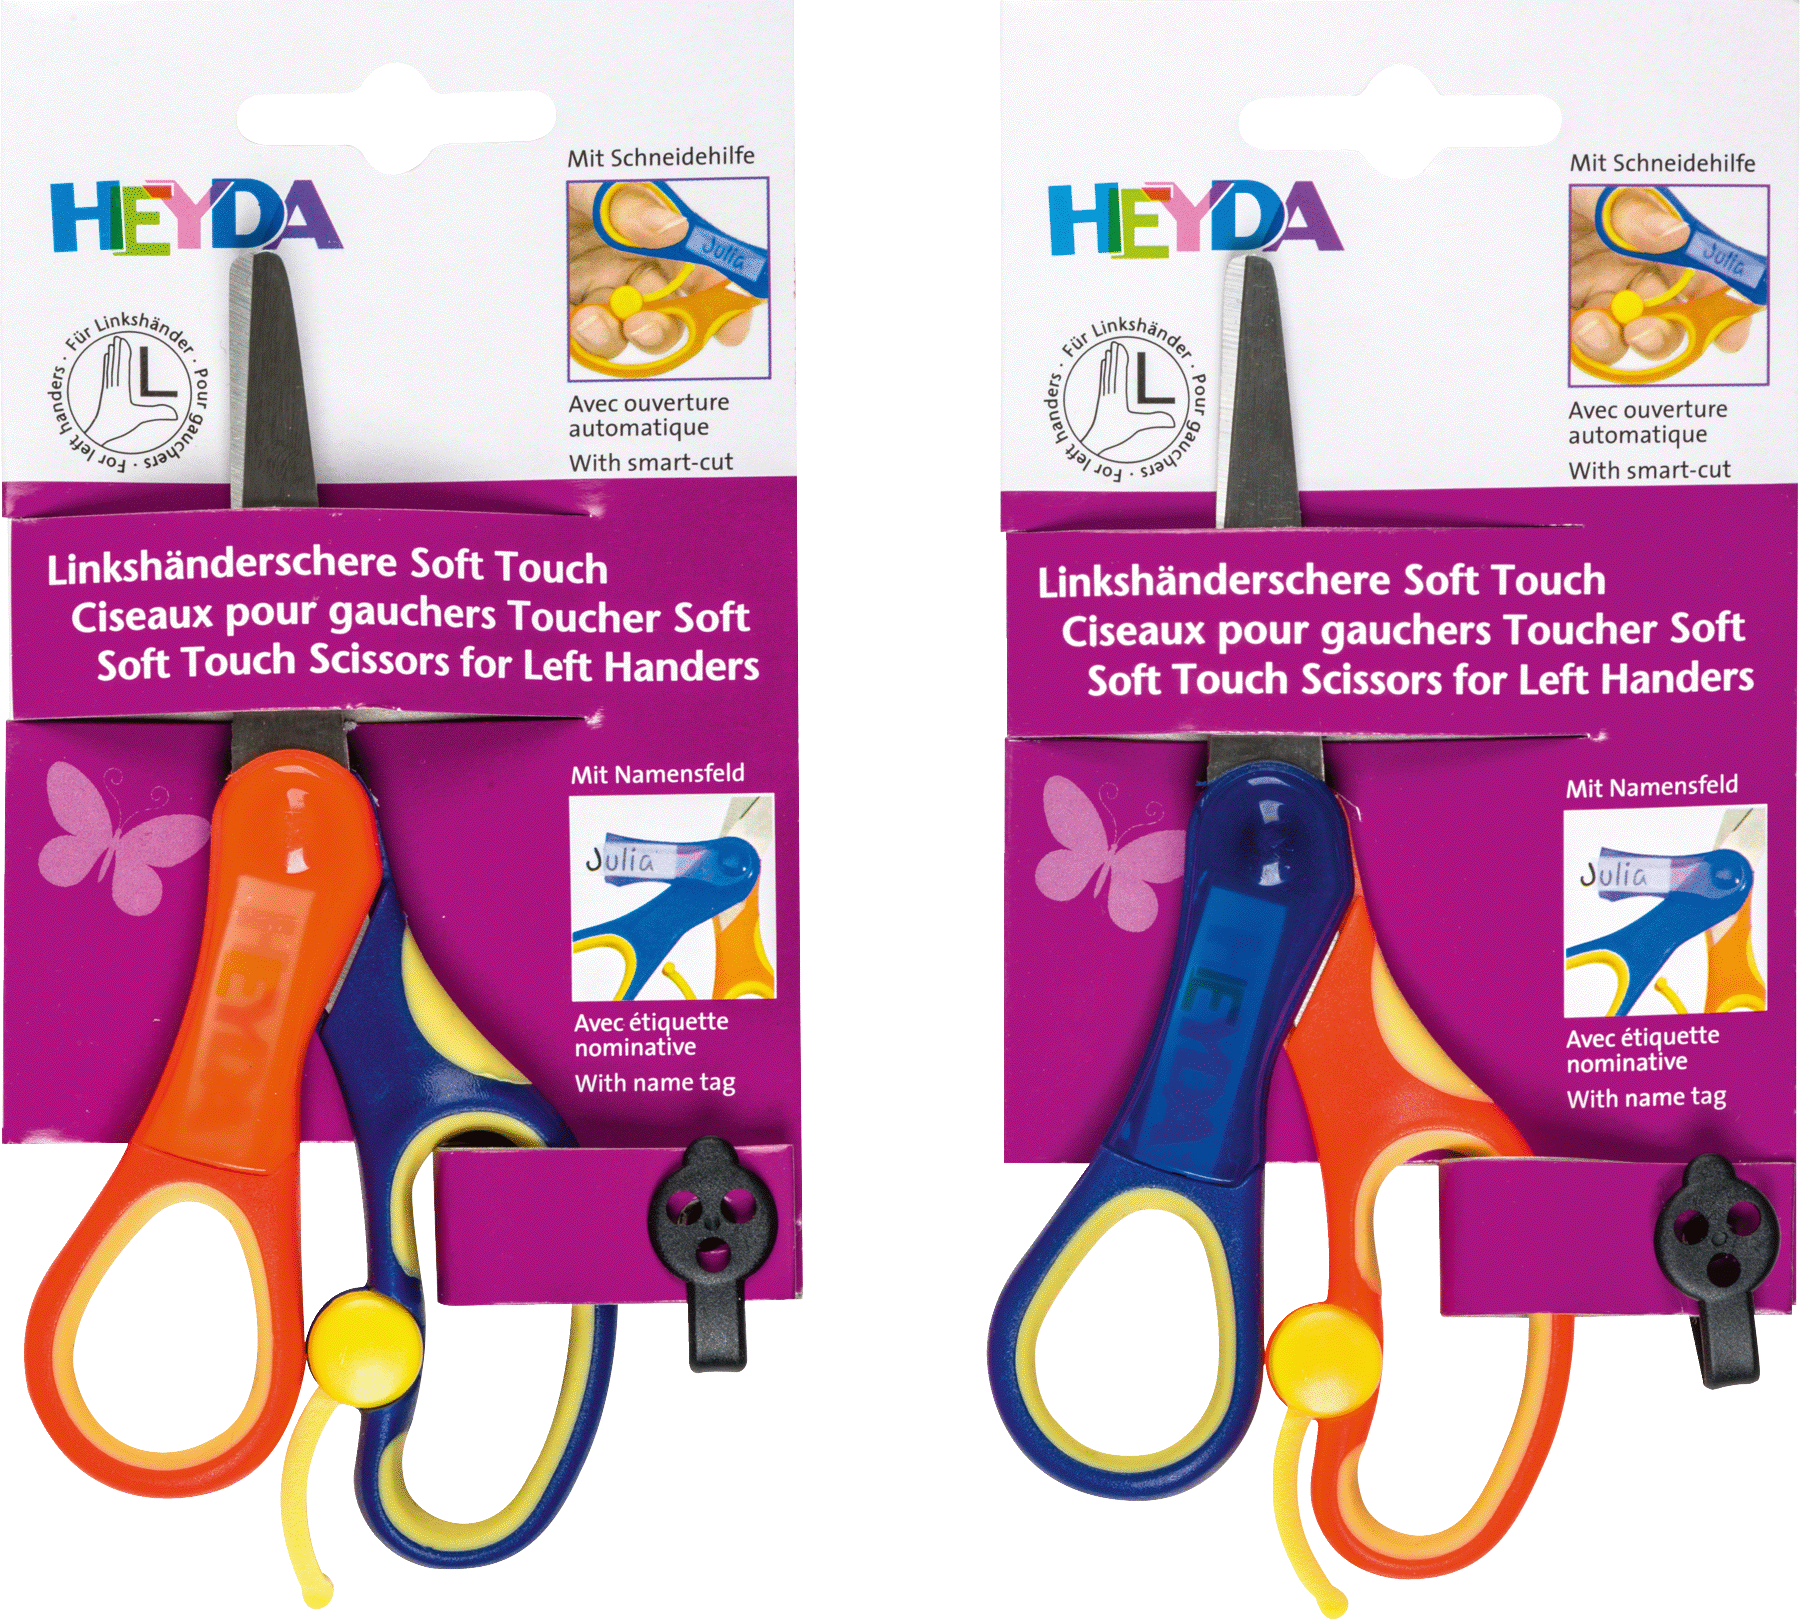 Kinderschere Soft-Touch Linkshänder 13,5 cm Grifffarbe: blau/gelb/orange